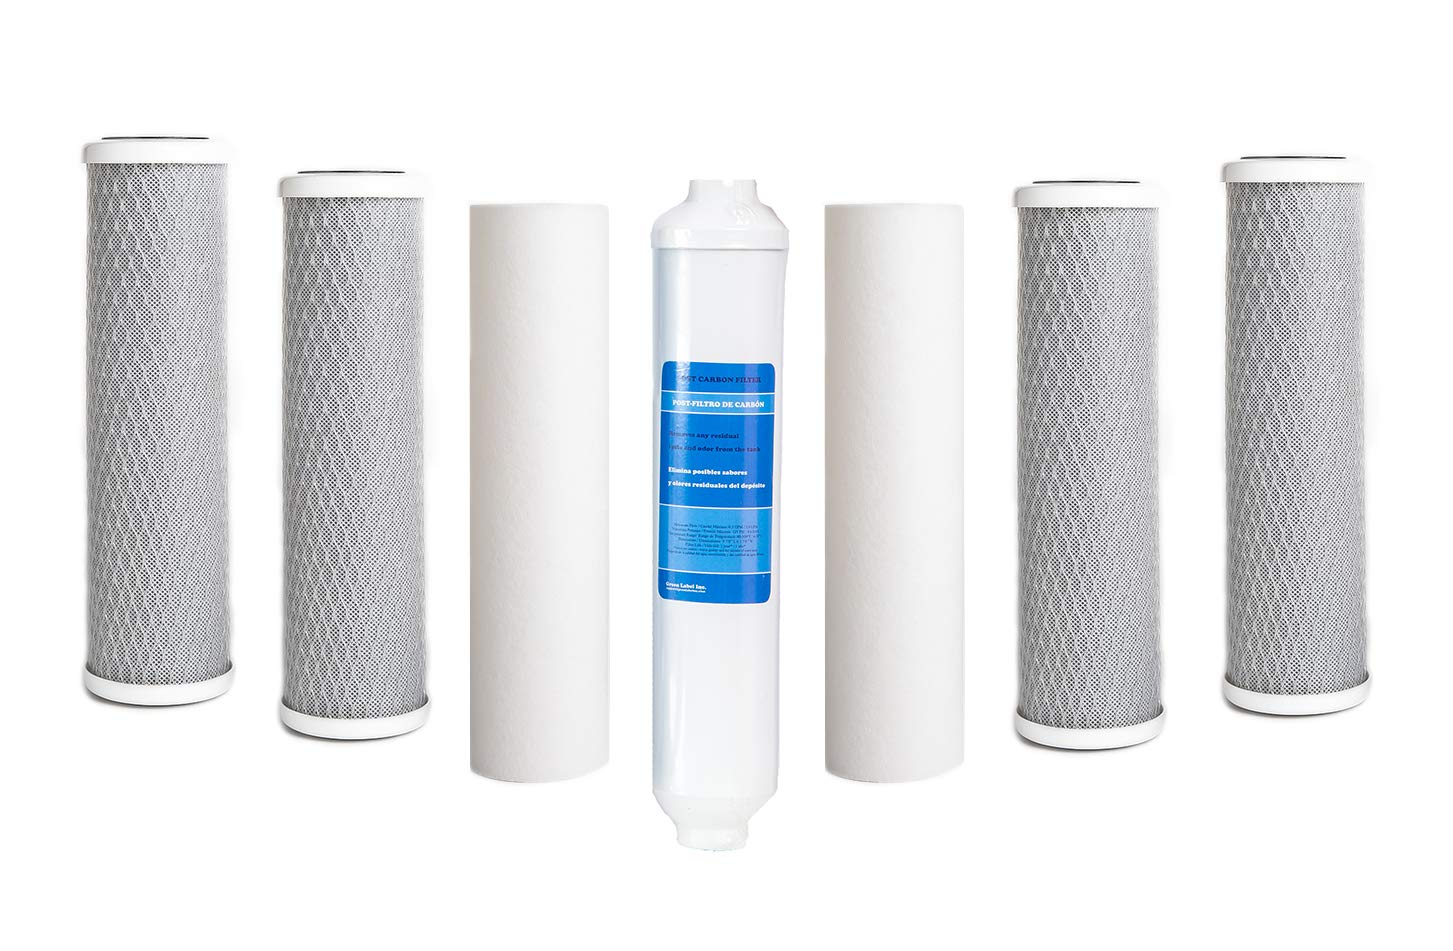 Green Label Universal 10 Inch Replacement Filter Set for Standard Multi-Stage Reverse Osmosis Water Filtration Systems: 2 PP Sediment, 4 CTO Carbon Block, 1 Polishing Filters (7 Filters)